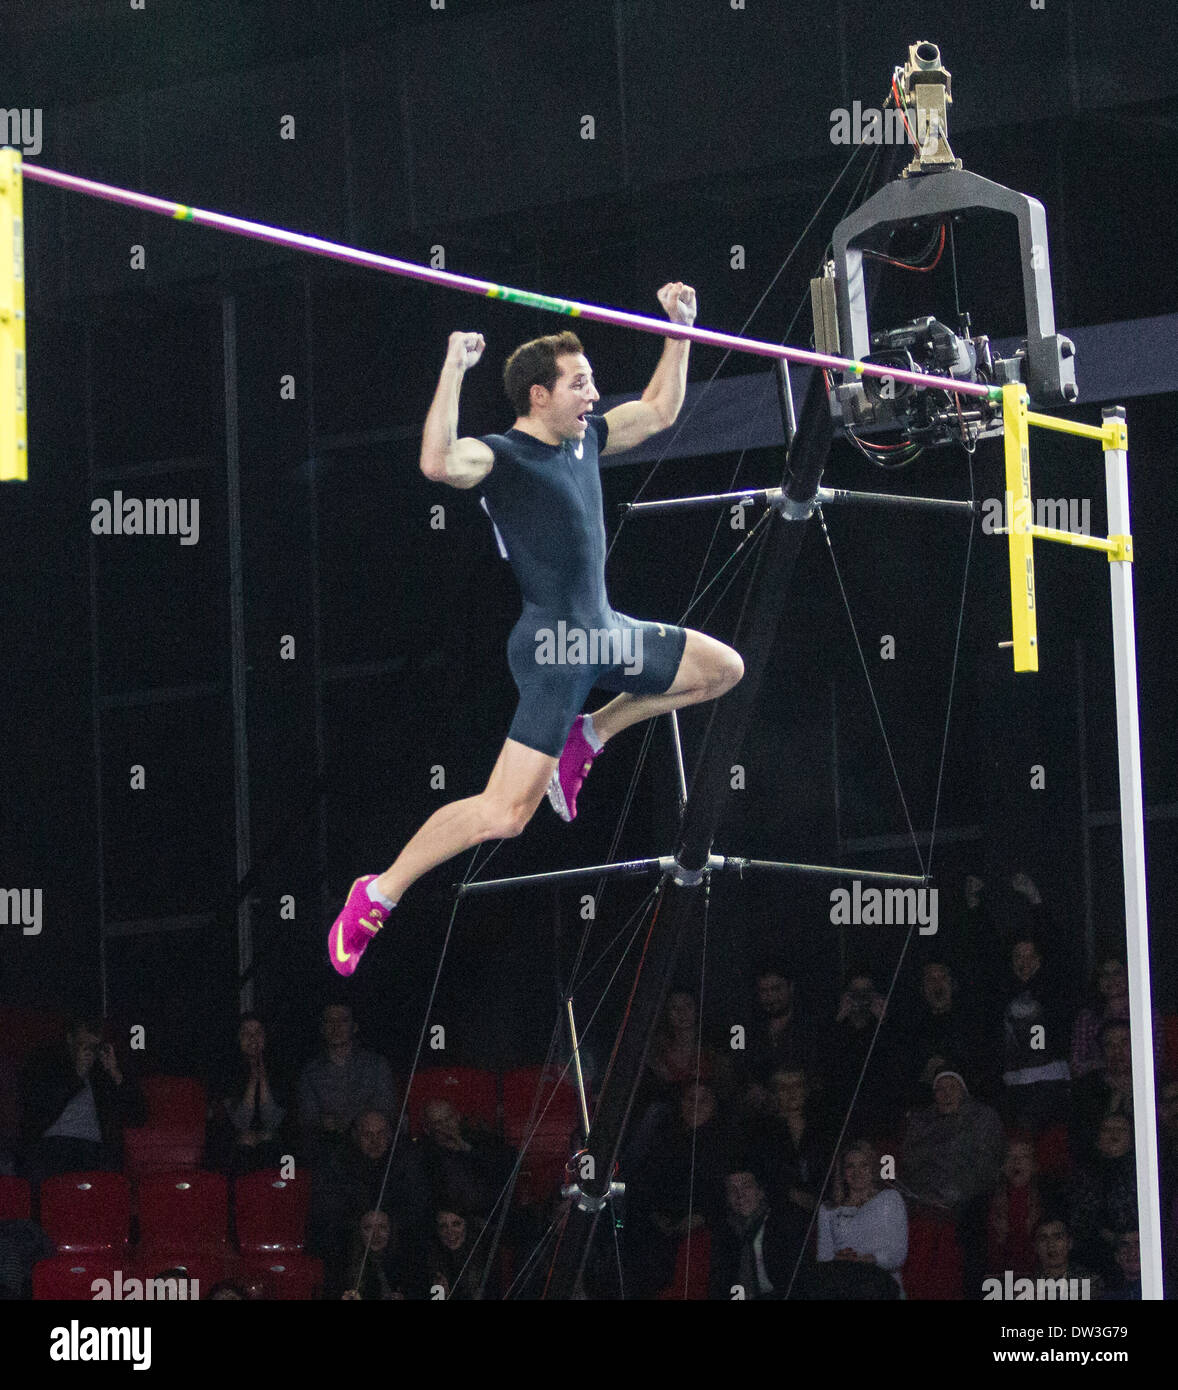 French pole vaulter Renaud Lavillenie set a world record * of 6.16m at the Pole Vault Stars meeting in Donetsk, Ukraine - Stock Image